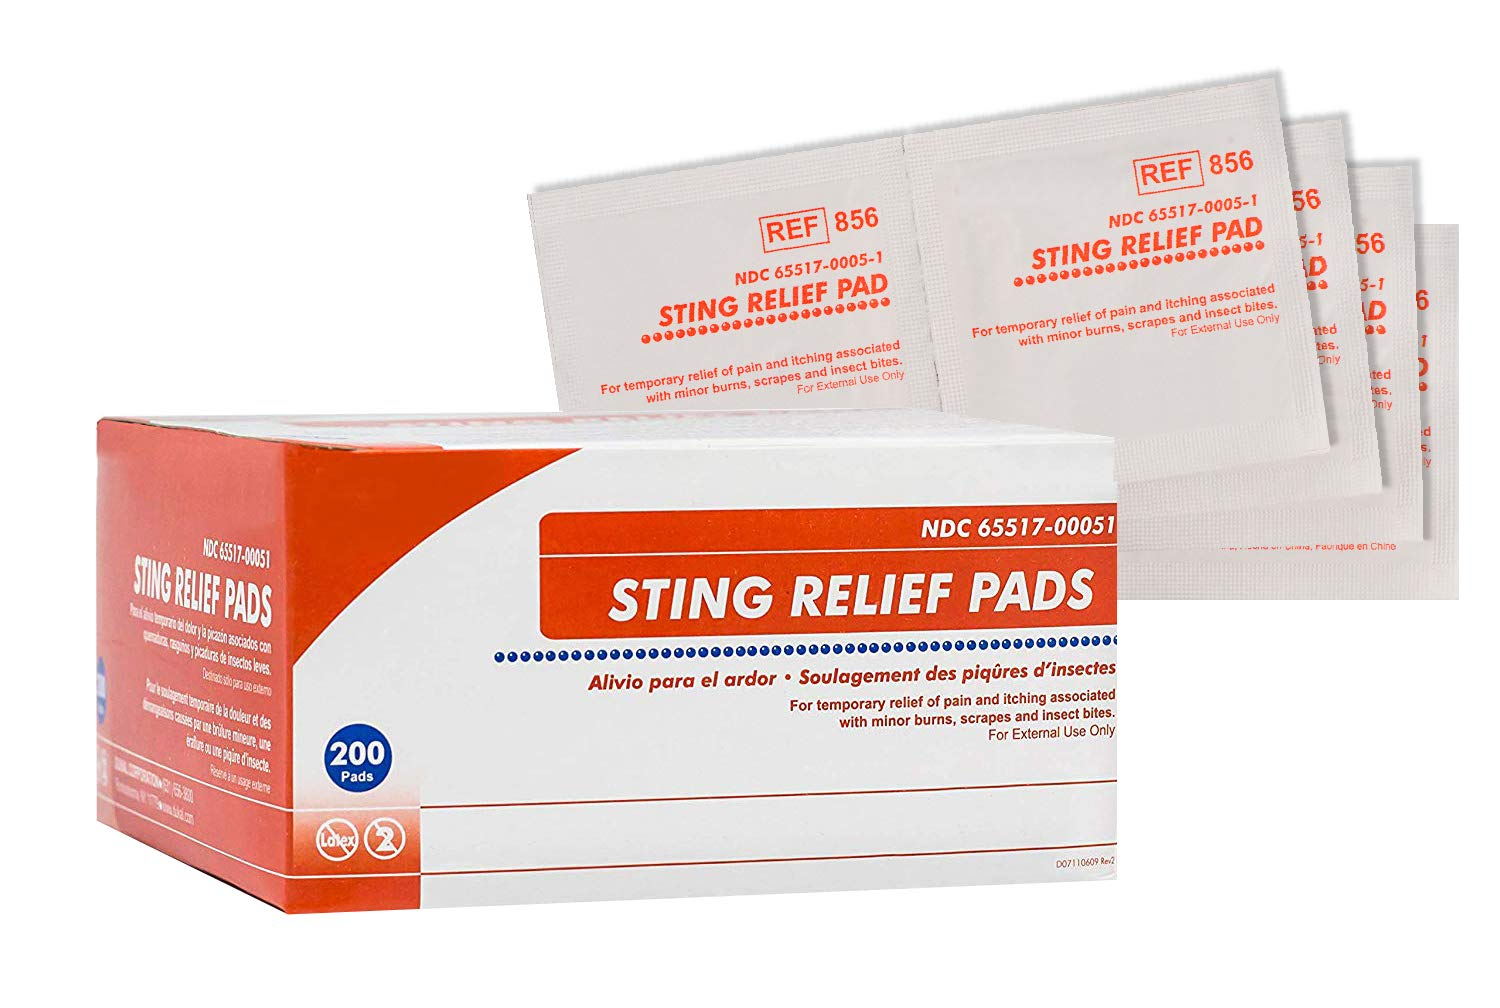 Sting Relief Pads. Case of 200 Anesthetic Pads for Burns, scrapes, Insect Bites. Individual Pouches. 6% Benzocaine, 60% Isopropyl Alcohol. 2-ply Pain Relief Pads. by AMZ Medical Supply